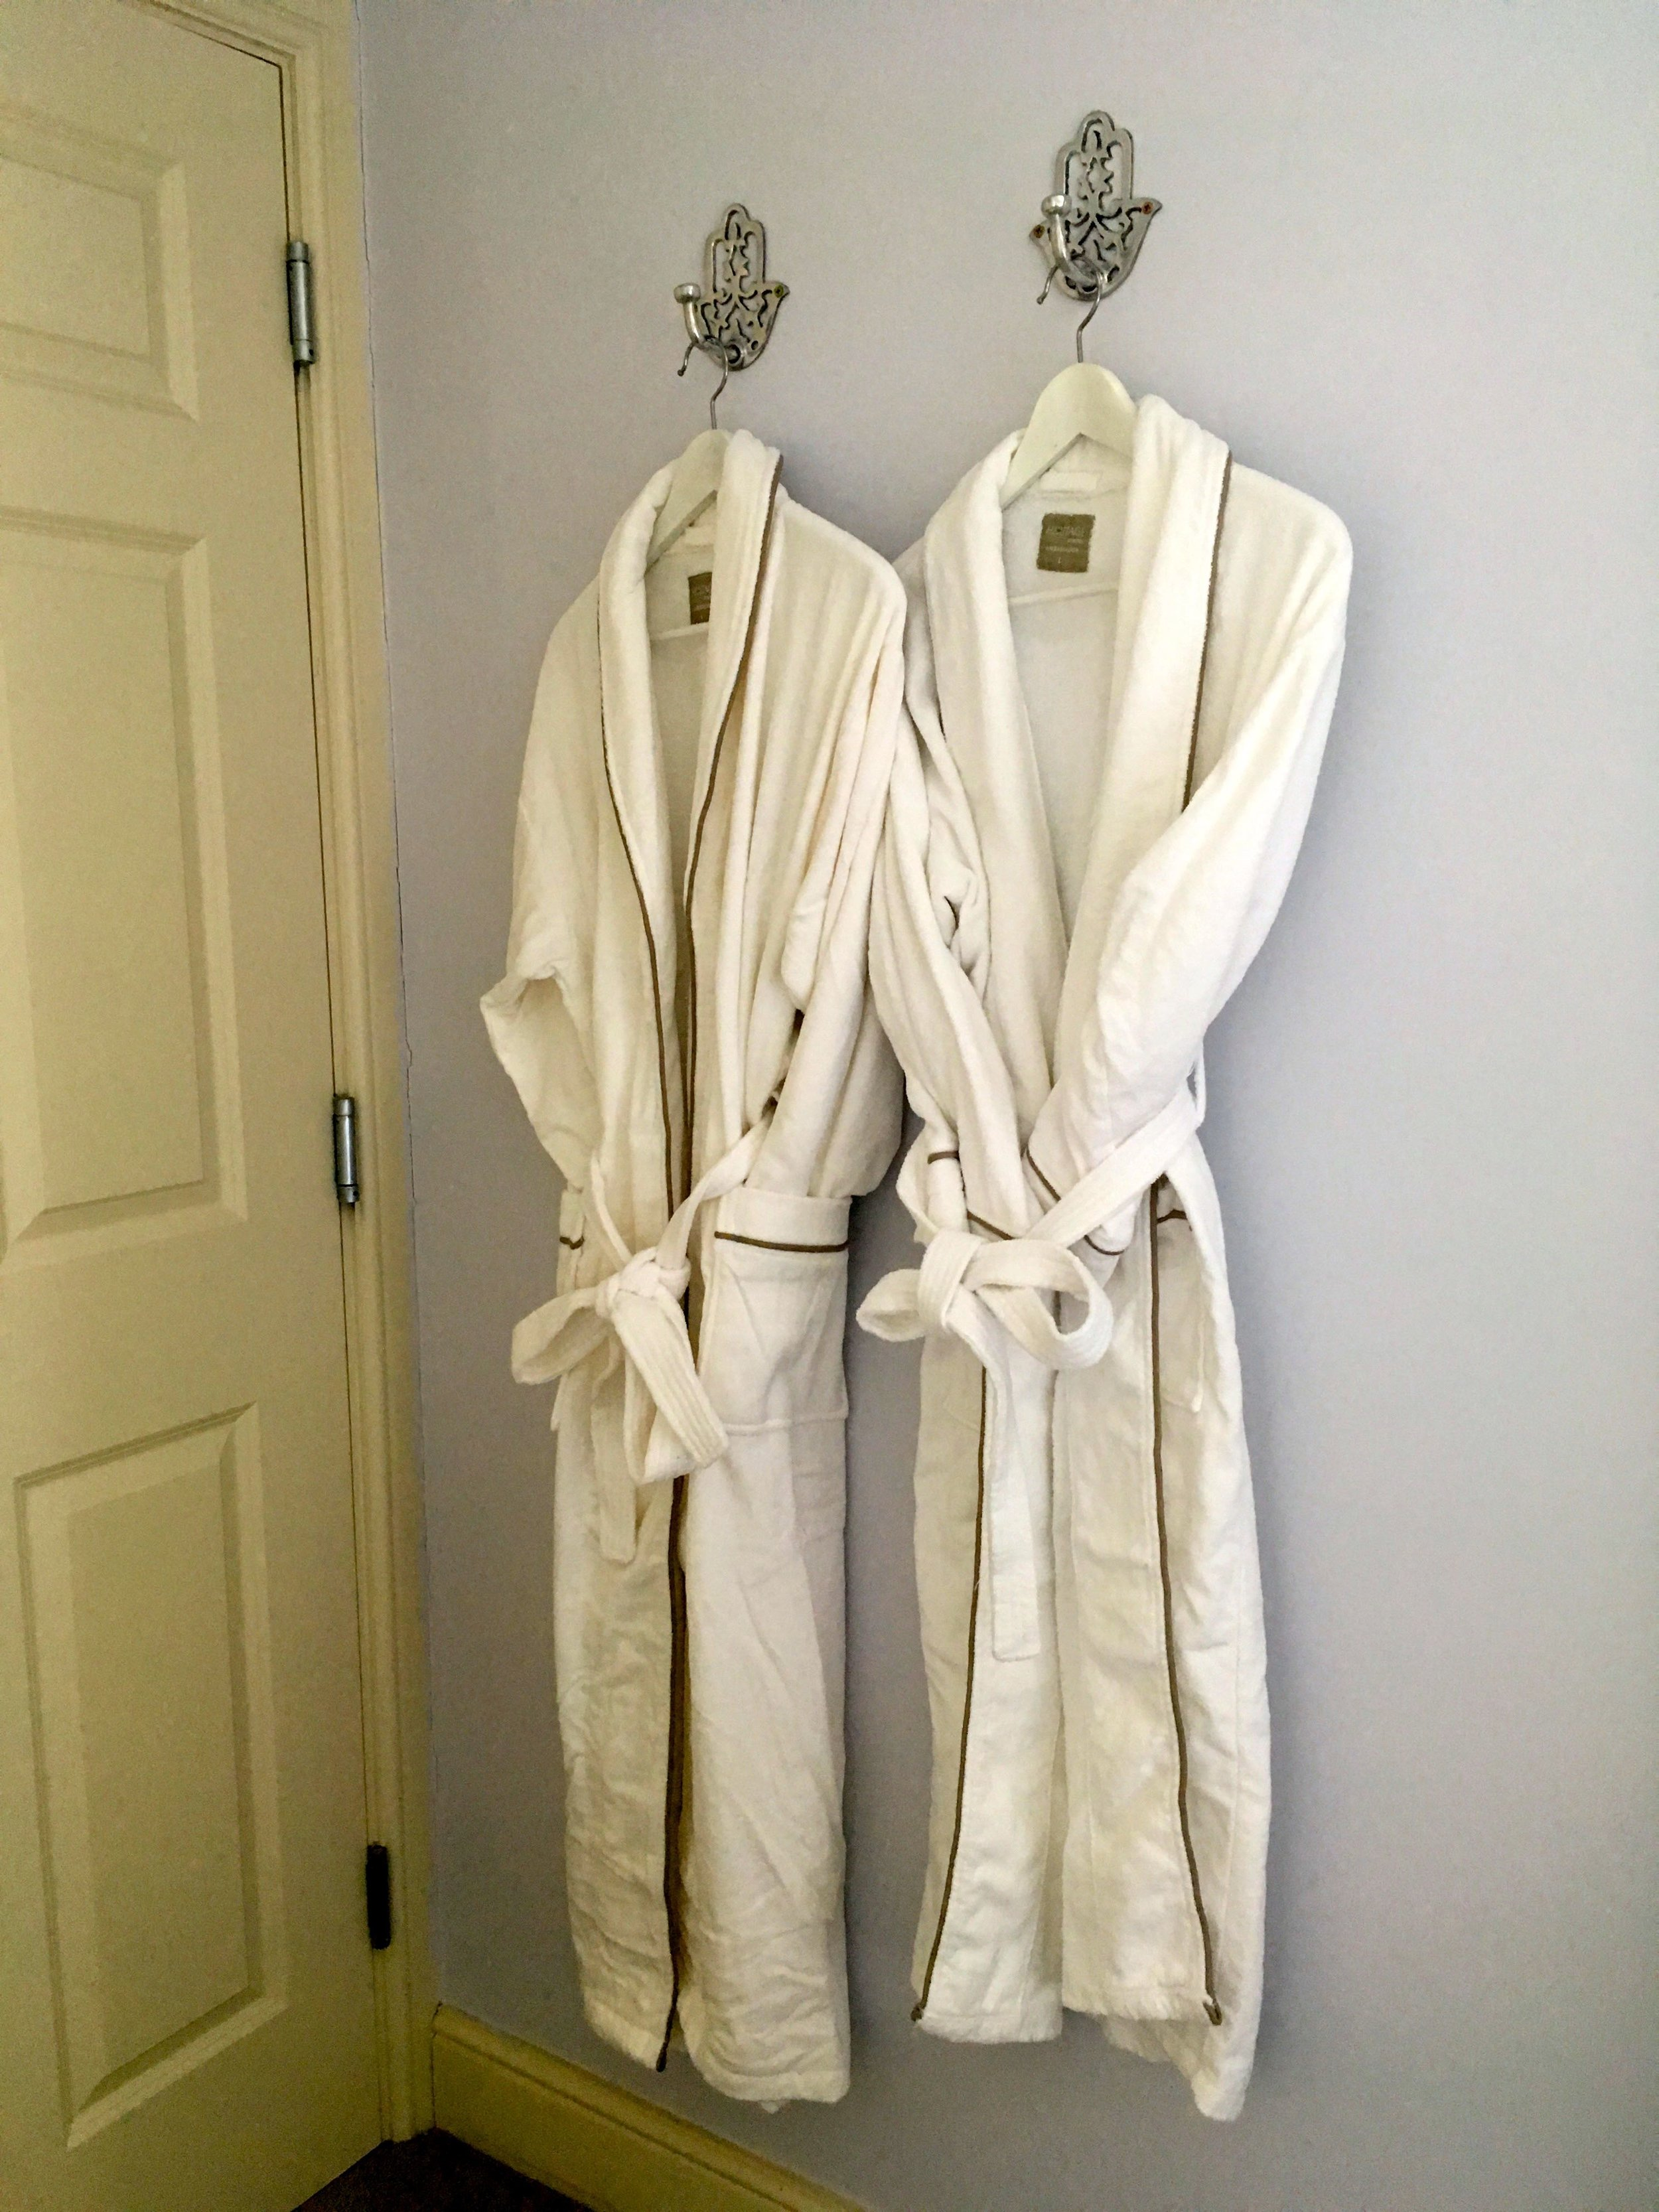 And velour towelling bathroom robes